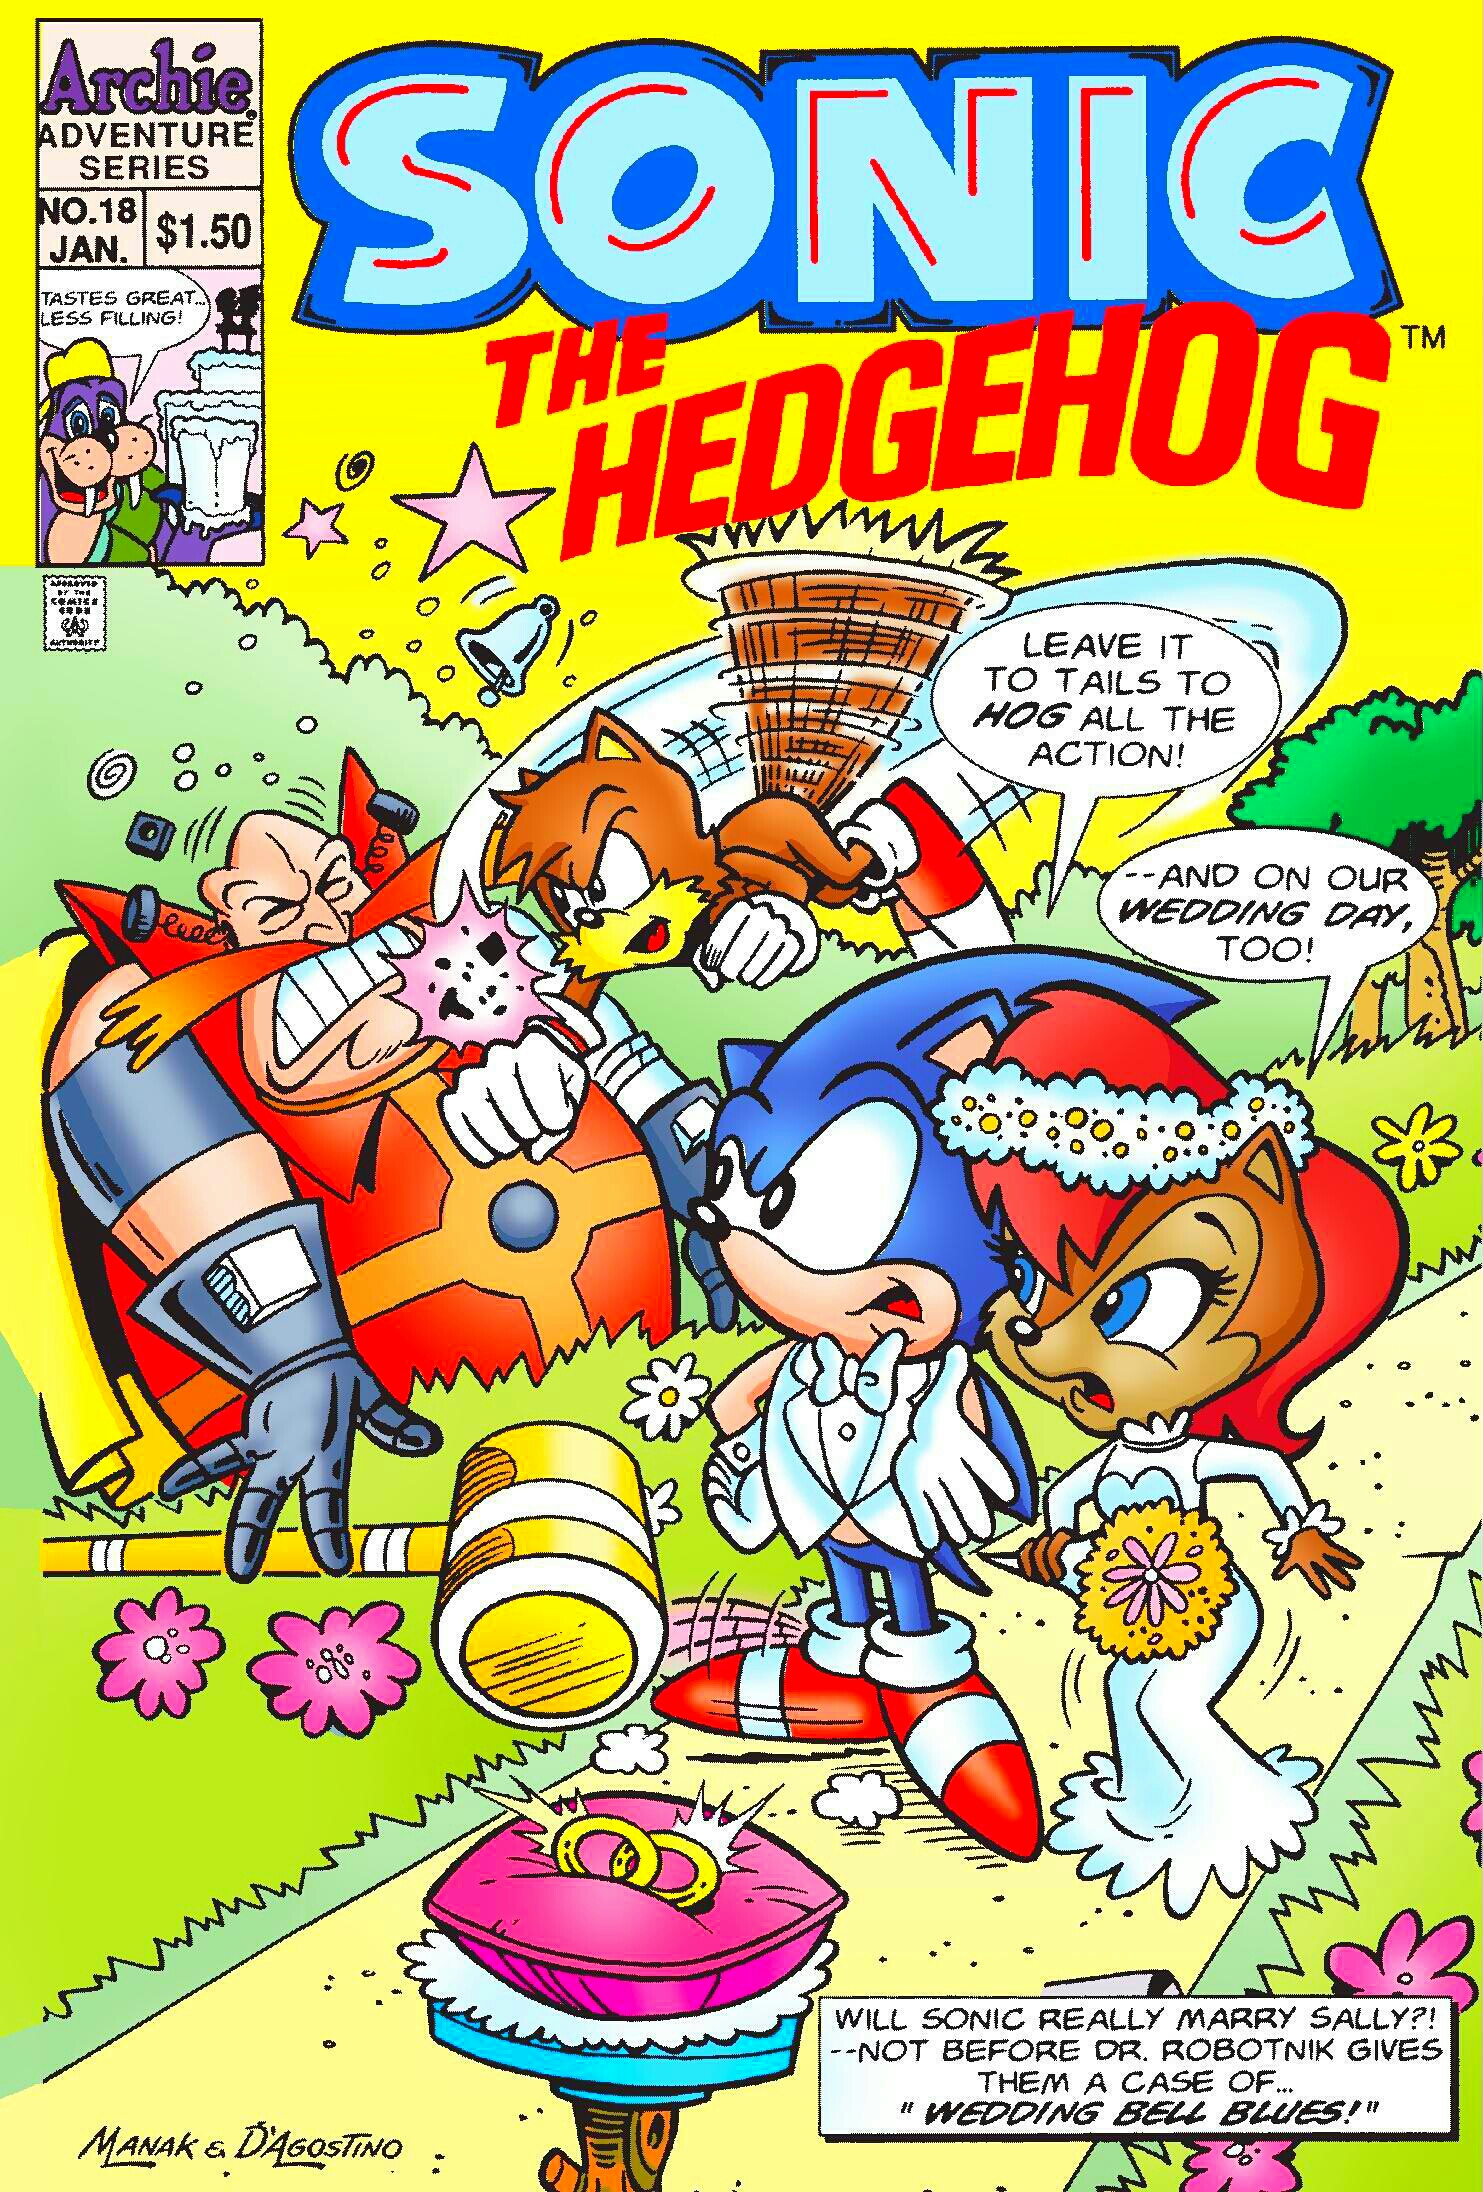 Archie Sonic the Hedgehog Issue 18